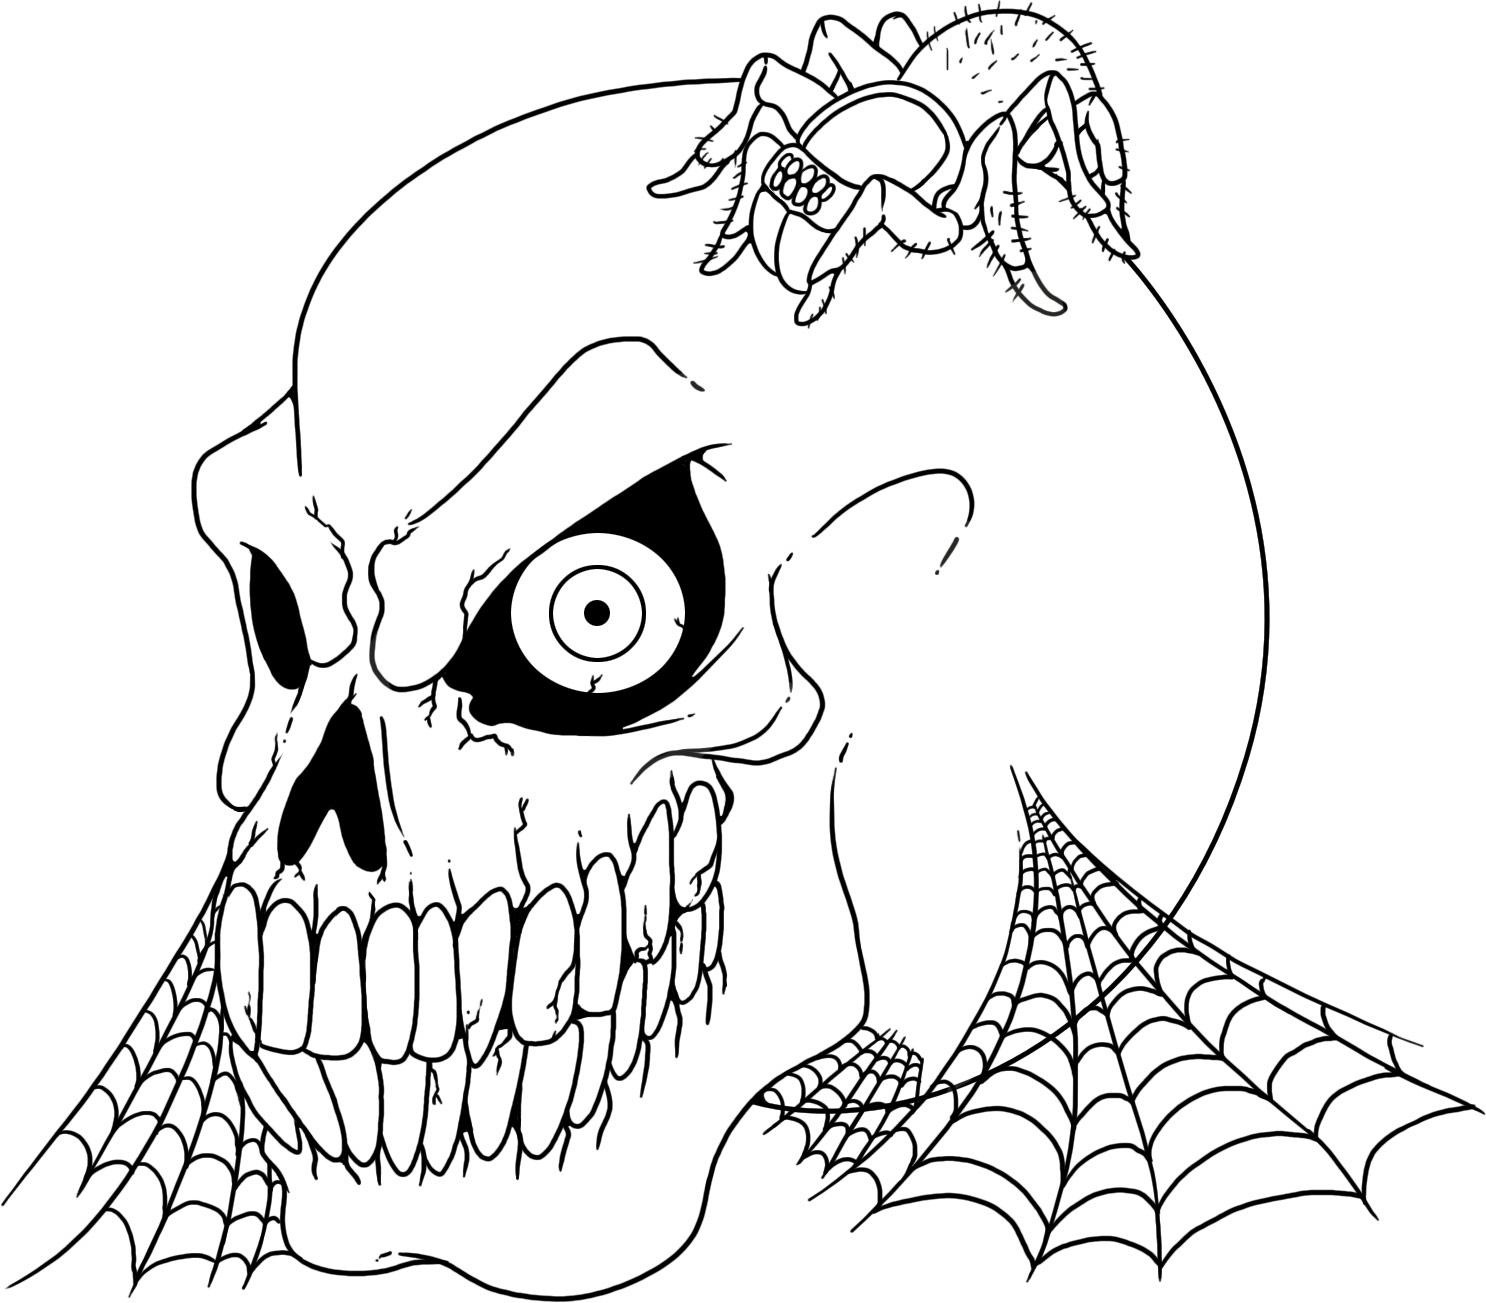 skull coloring pages to print Free Printable Skull Coloring Pages For Kids skull coloring pages to print